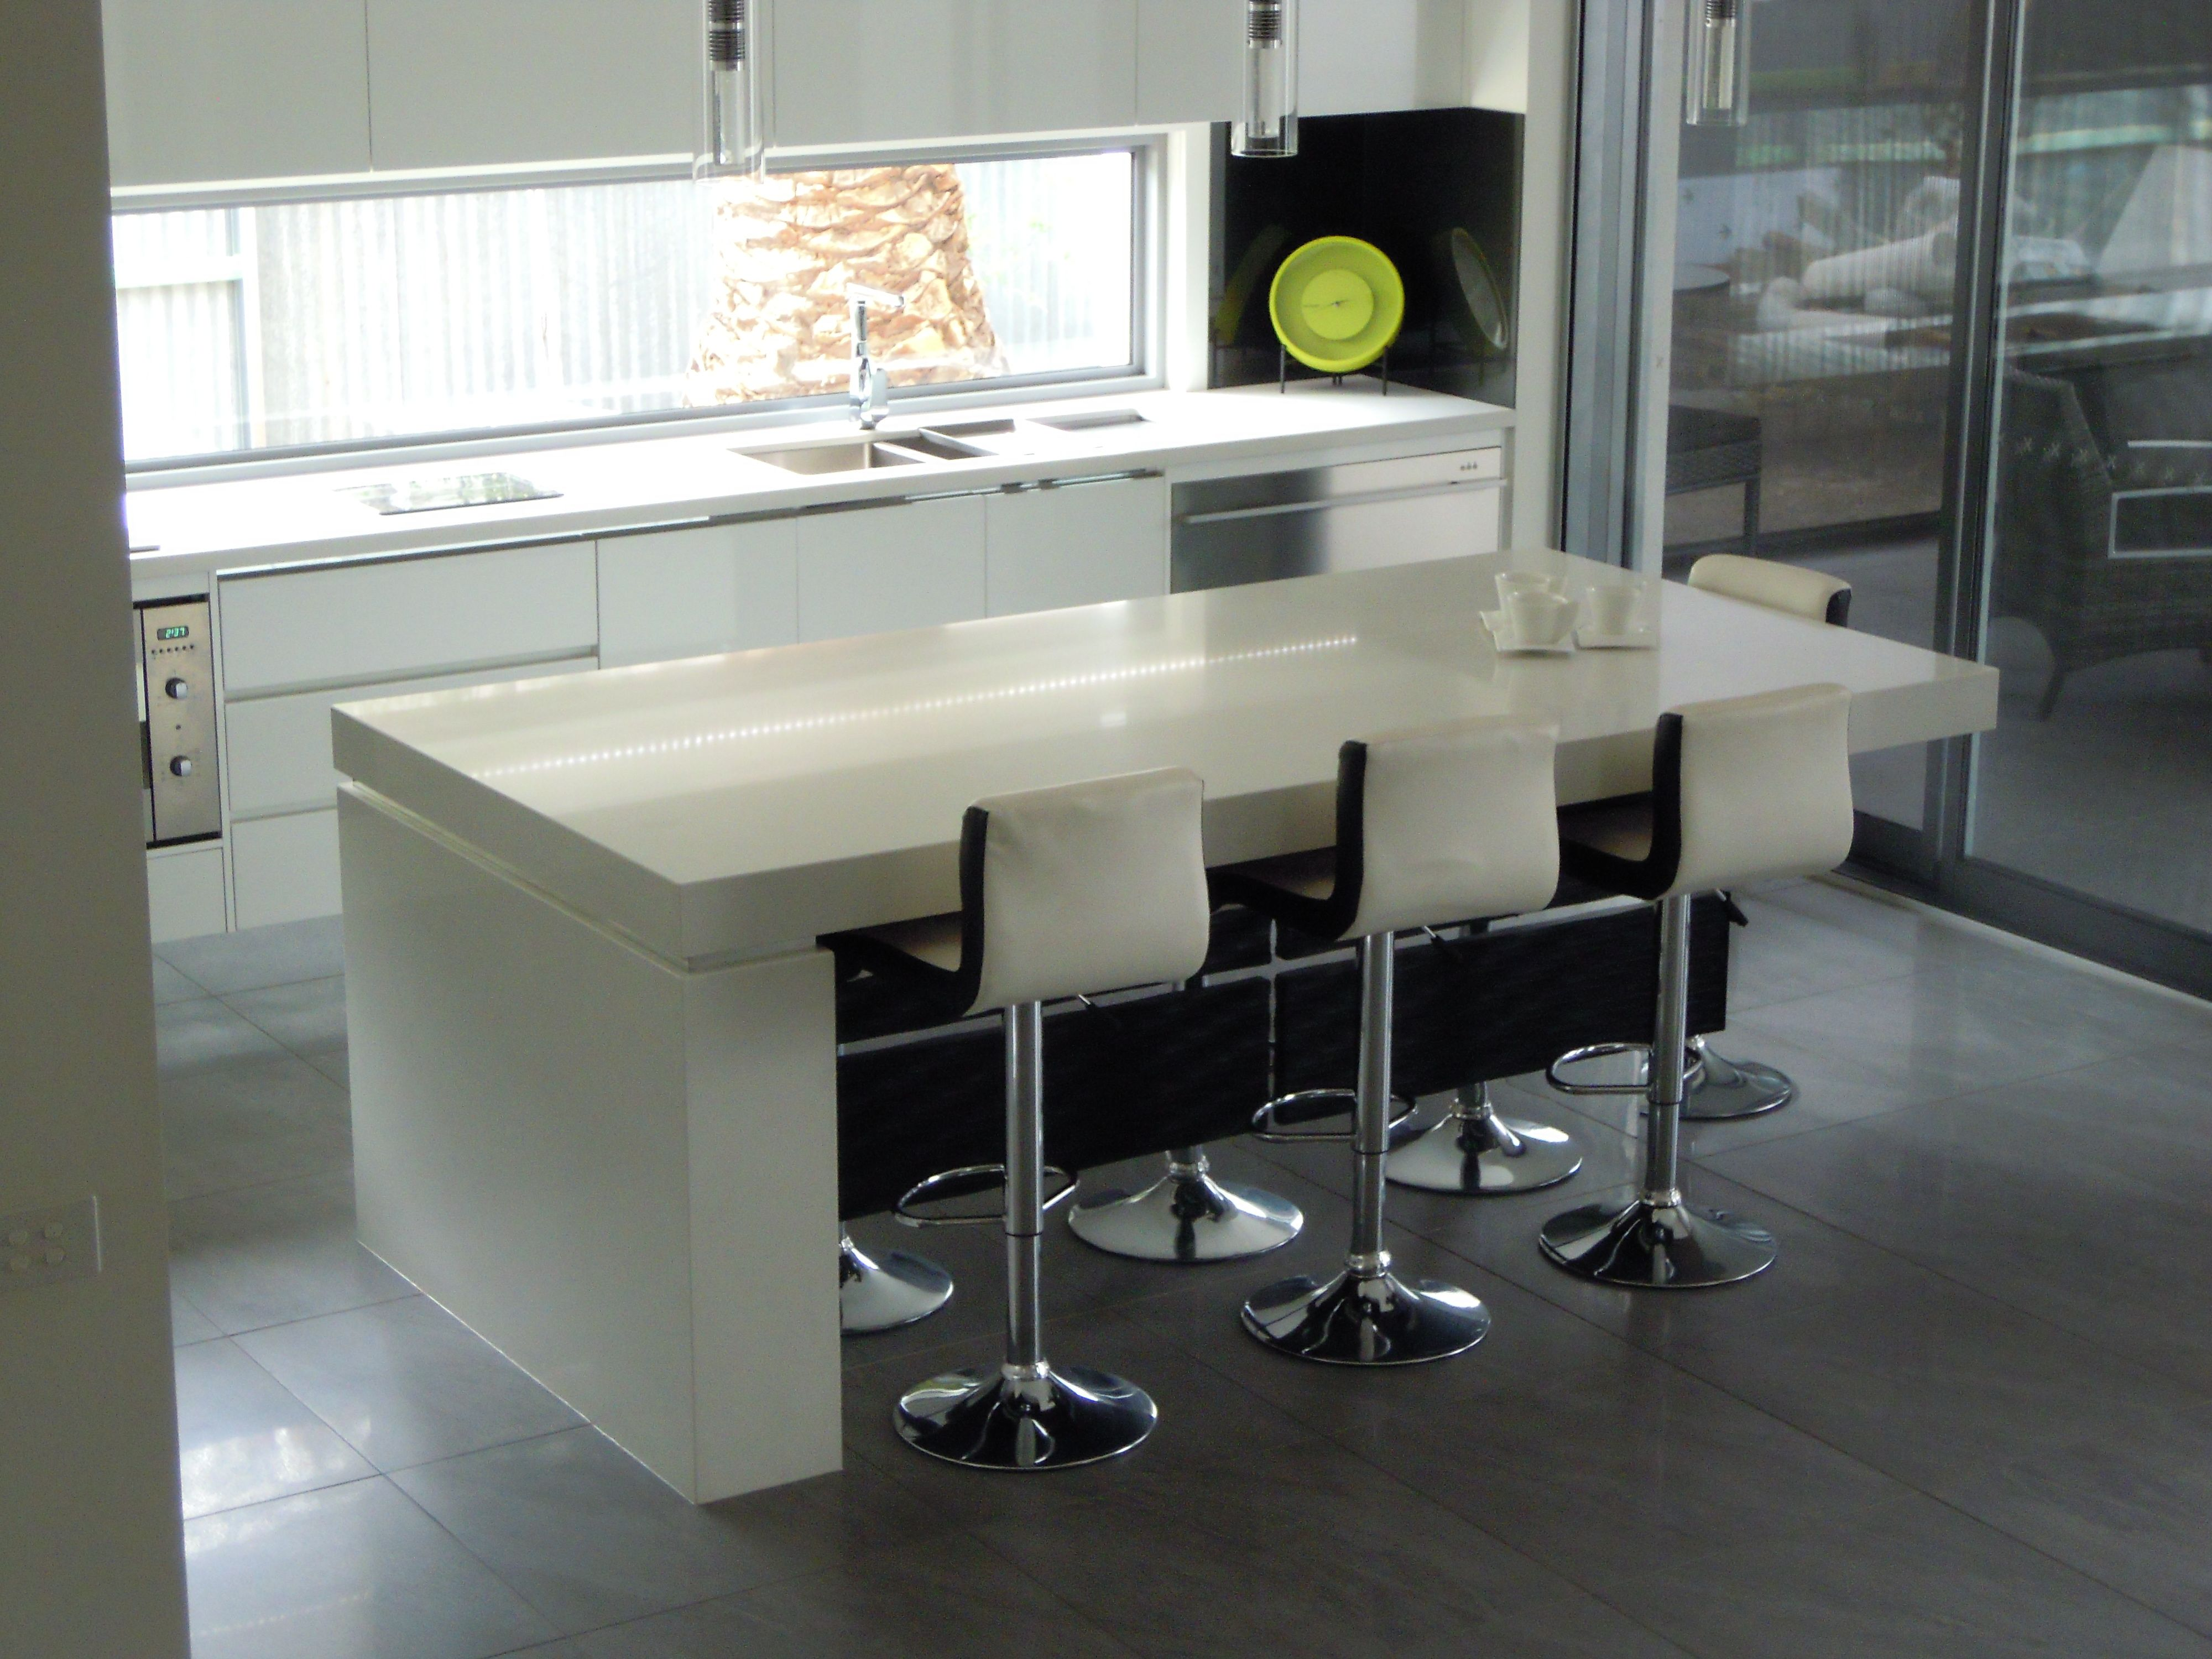 Ivory gloss kitchen bentleys interiors - This Kitchen Features Smartstone Arcadia Benchtops With Formica Vinyl Wrap Doors In Gloss Warm White